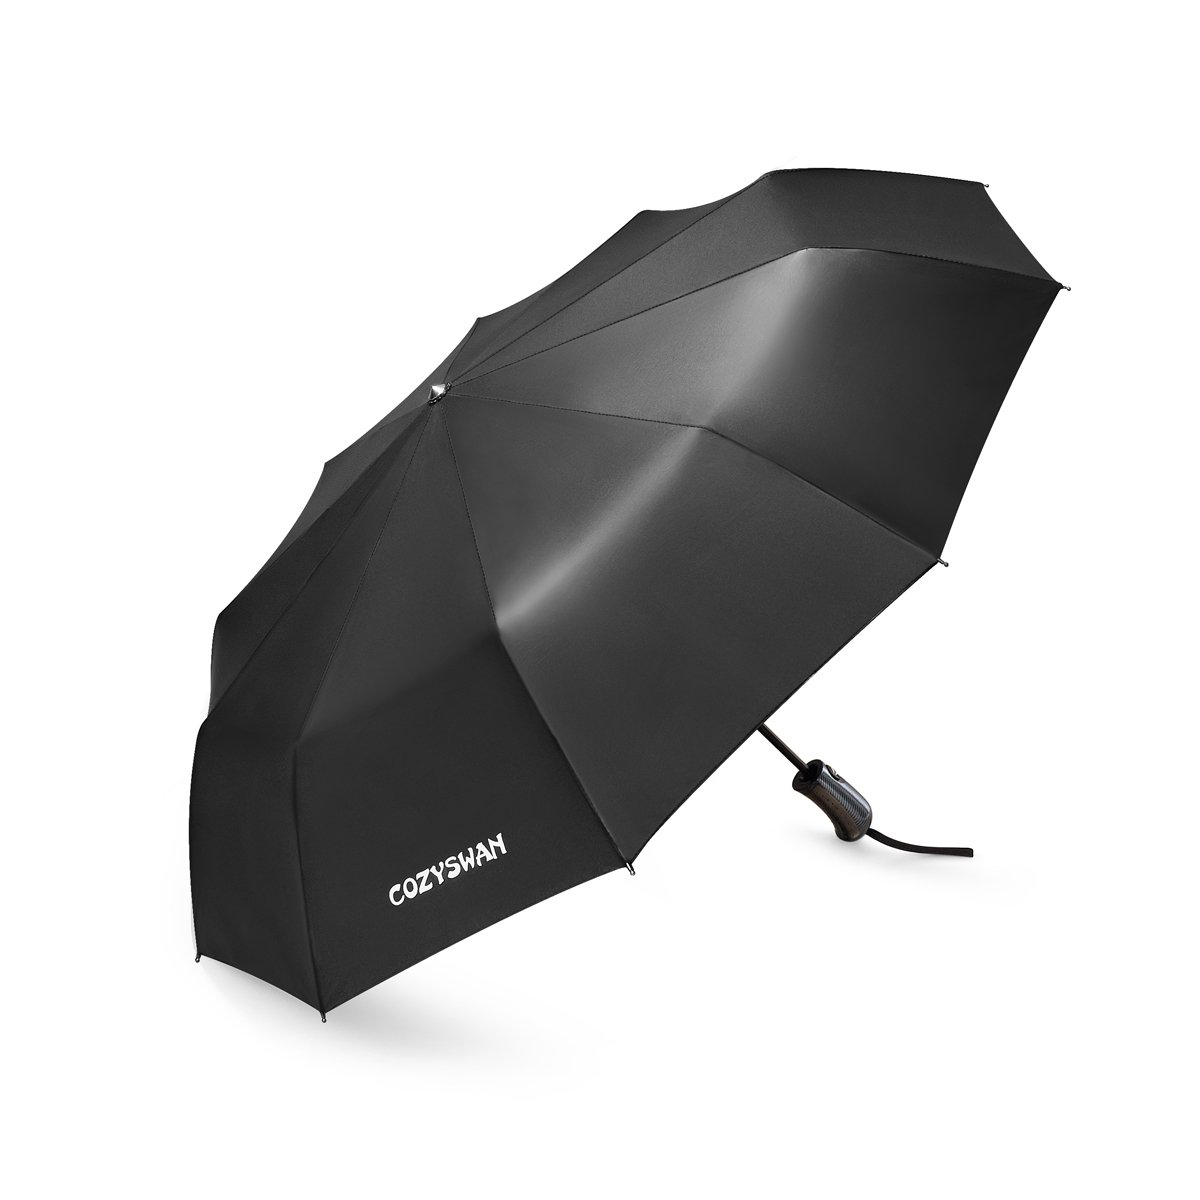 Umbrella, Cozyswan Travel Umbrella 210T Automatic Folding Umbrella with Sunscreen Function,Black (10 Ribs) by COZYSWAN (Image #1)